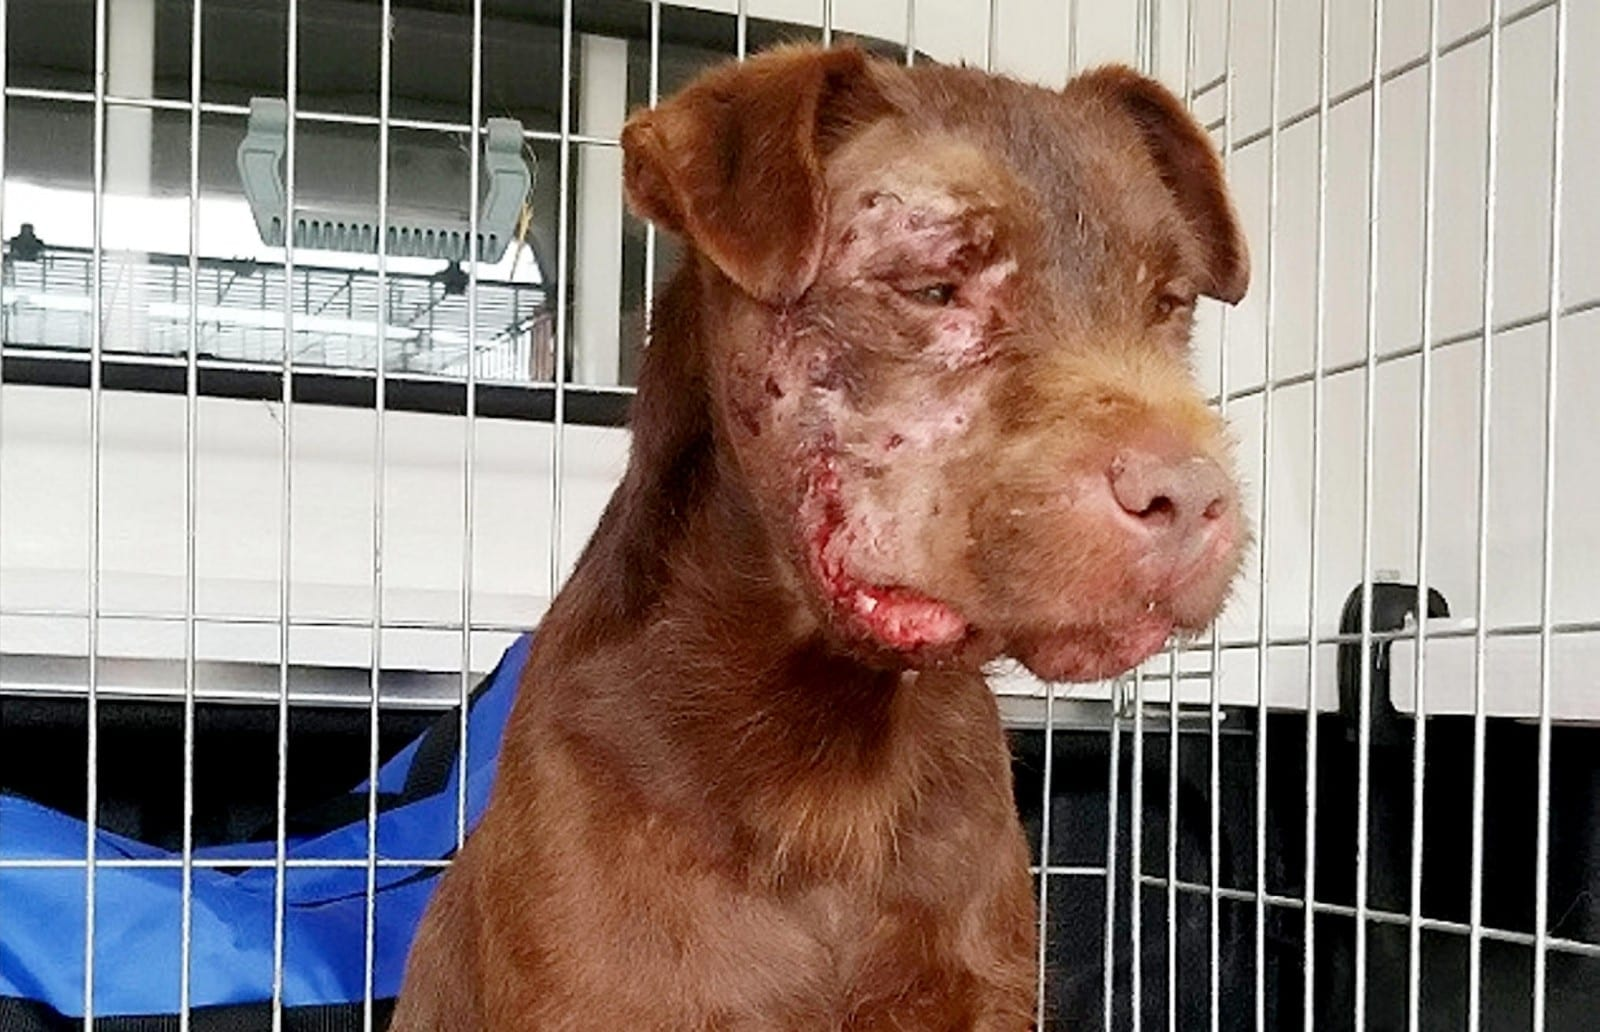 Graphic Photos – Terrier Type Dog Suffered Horrific Facial Injuries After Being Forced To Fight A Badger By Its Owners